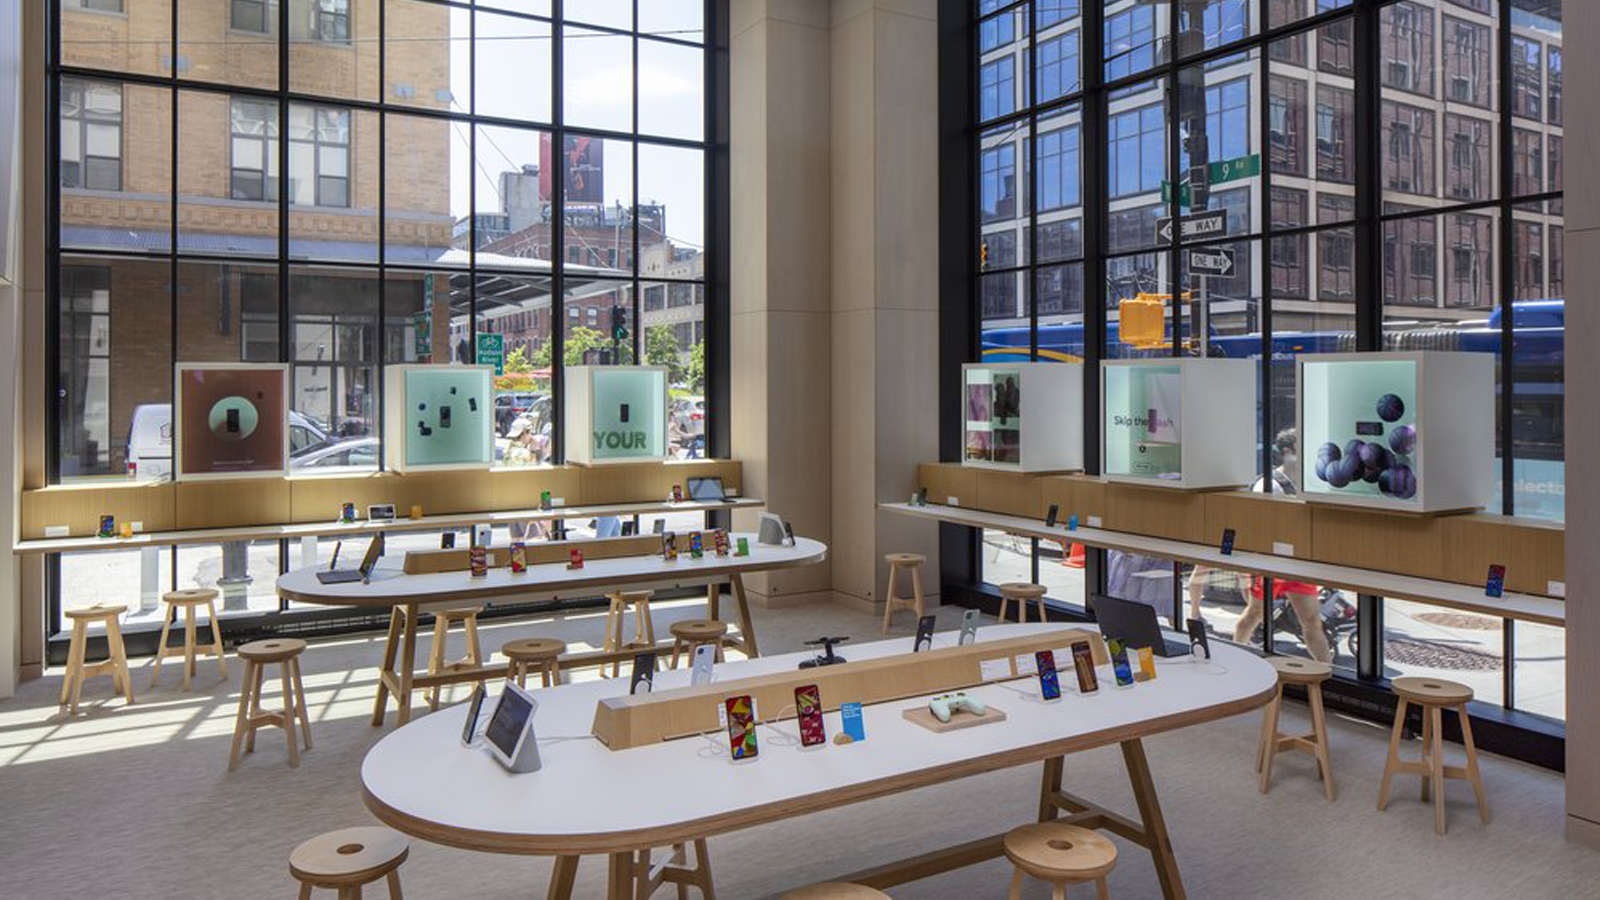 Interior view of the new Google Store, with phones and other devices on display